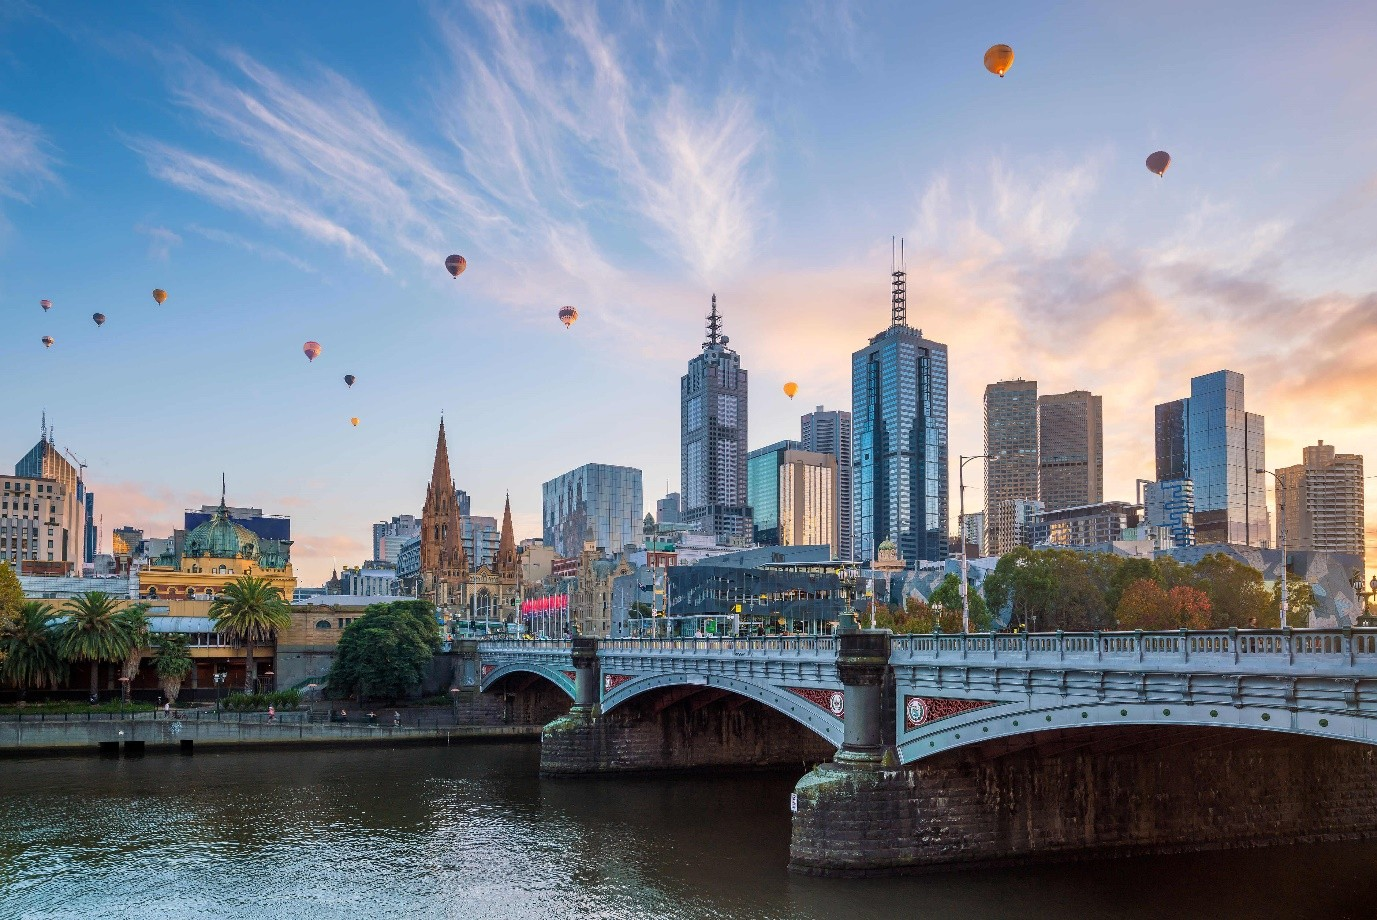 View of Melbourne CBD over the Yarra river